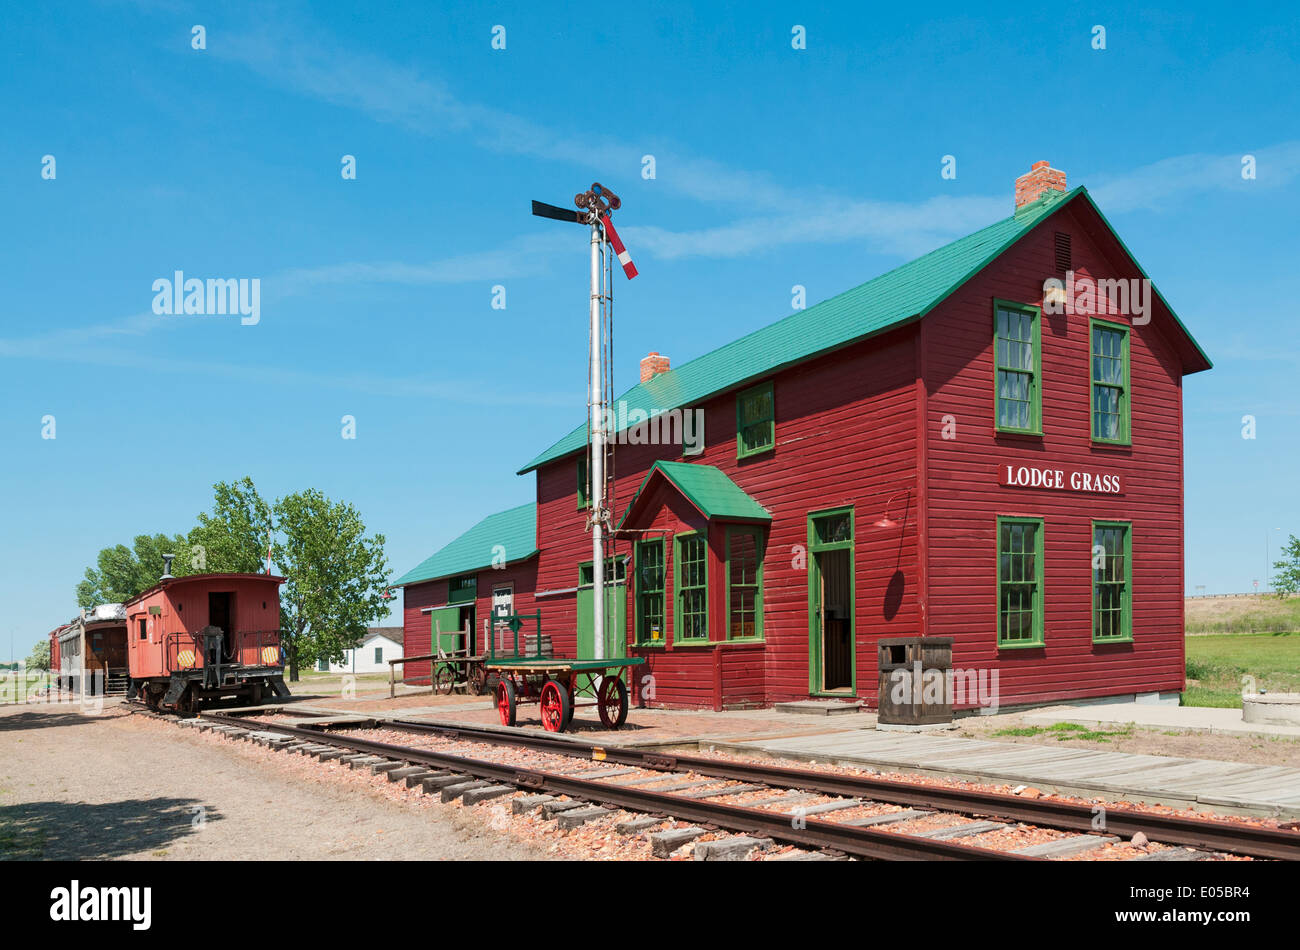 Montana, Hardin, Big Horn County Historical Museum, Lodge Grass Depot, railroad station dates from 1906 - Stock Image